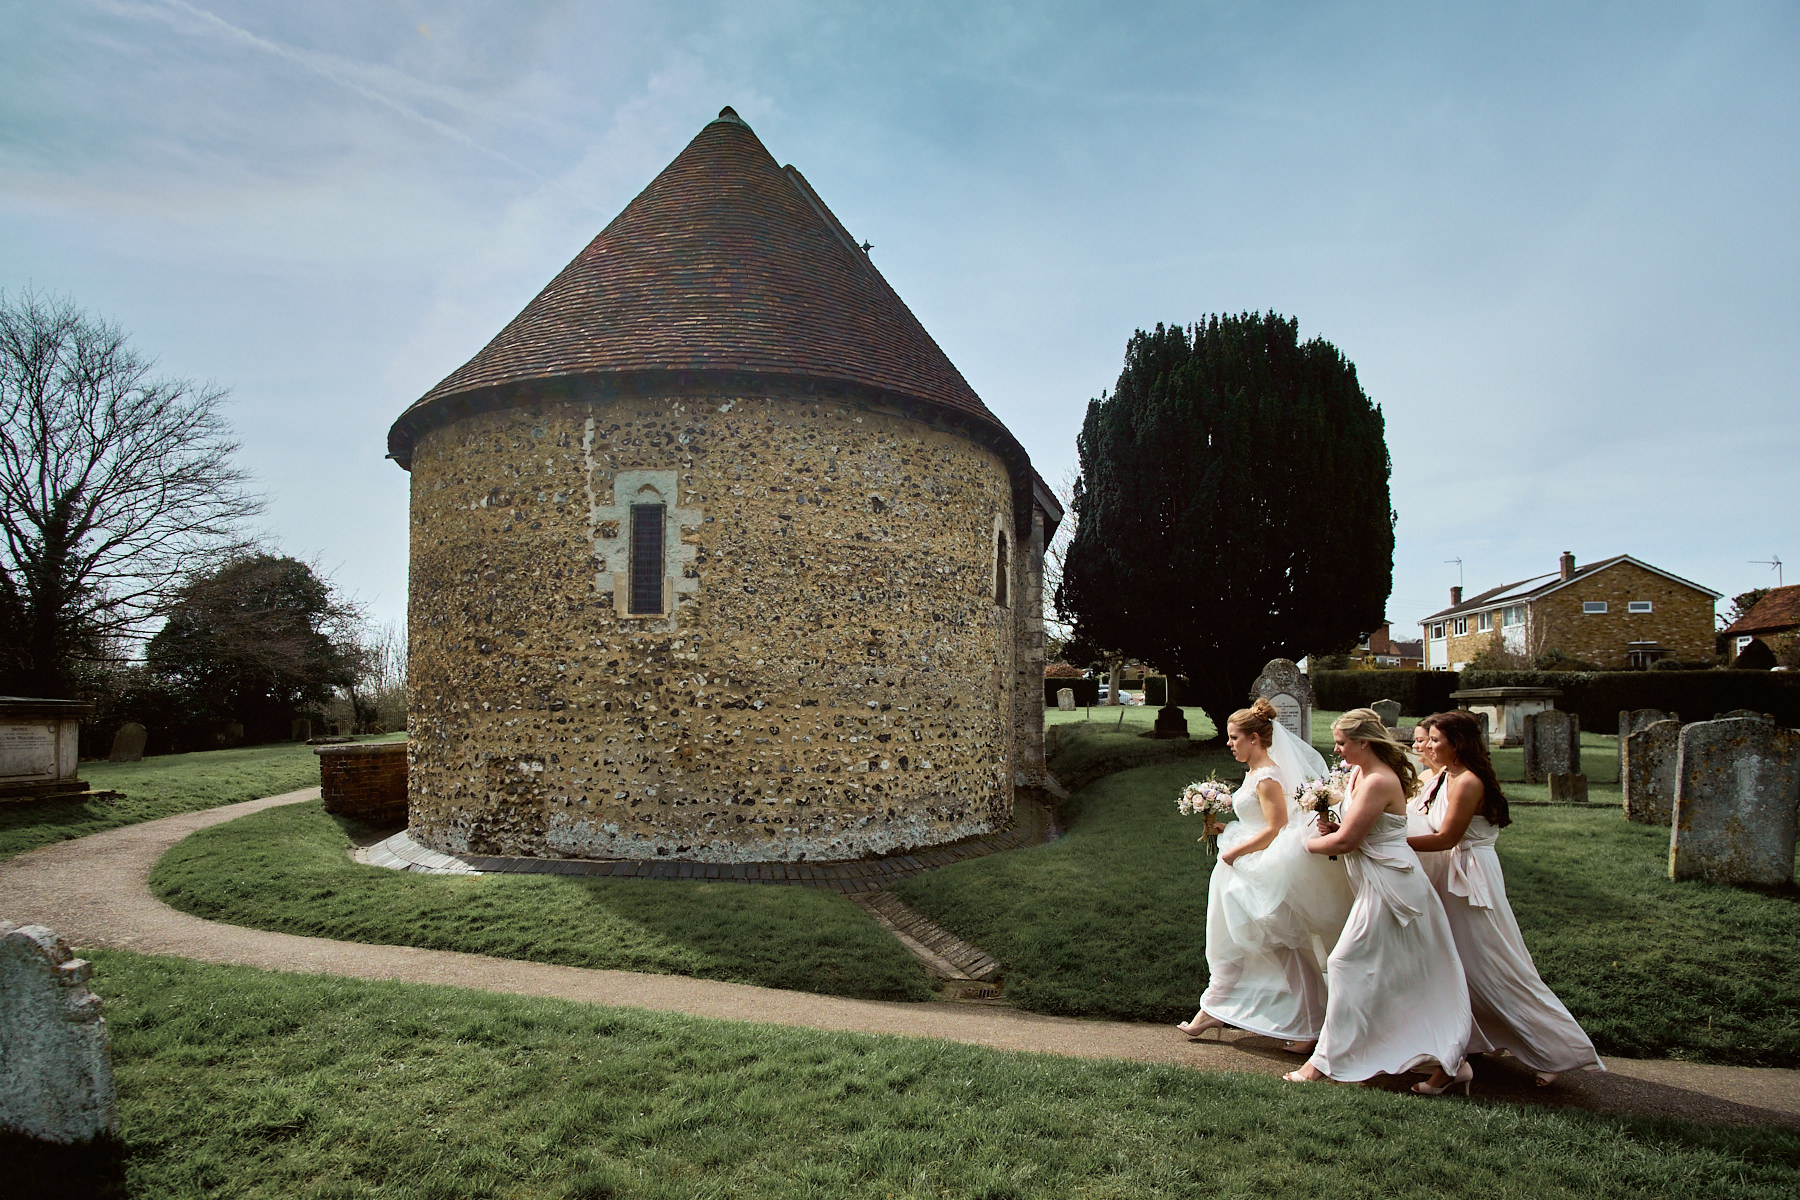 Wedding photographer Hertfordshire – brides and bridesmaids rushing to Hertford church by Michael Stanton Photography.